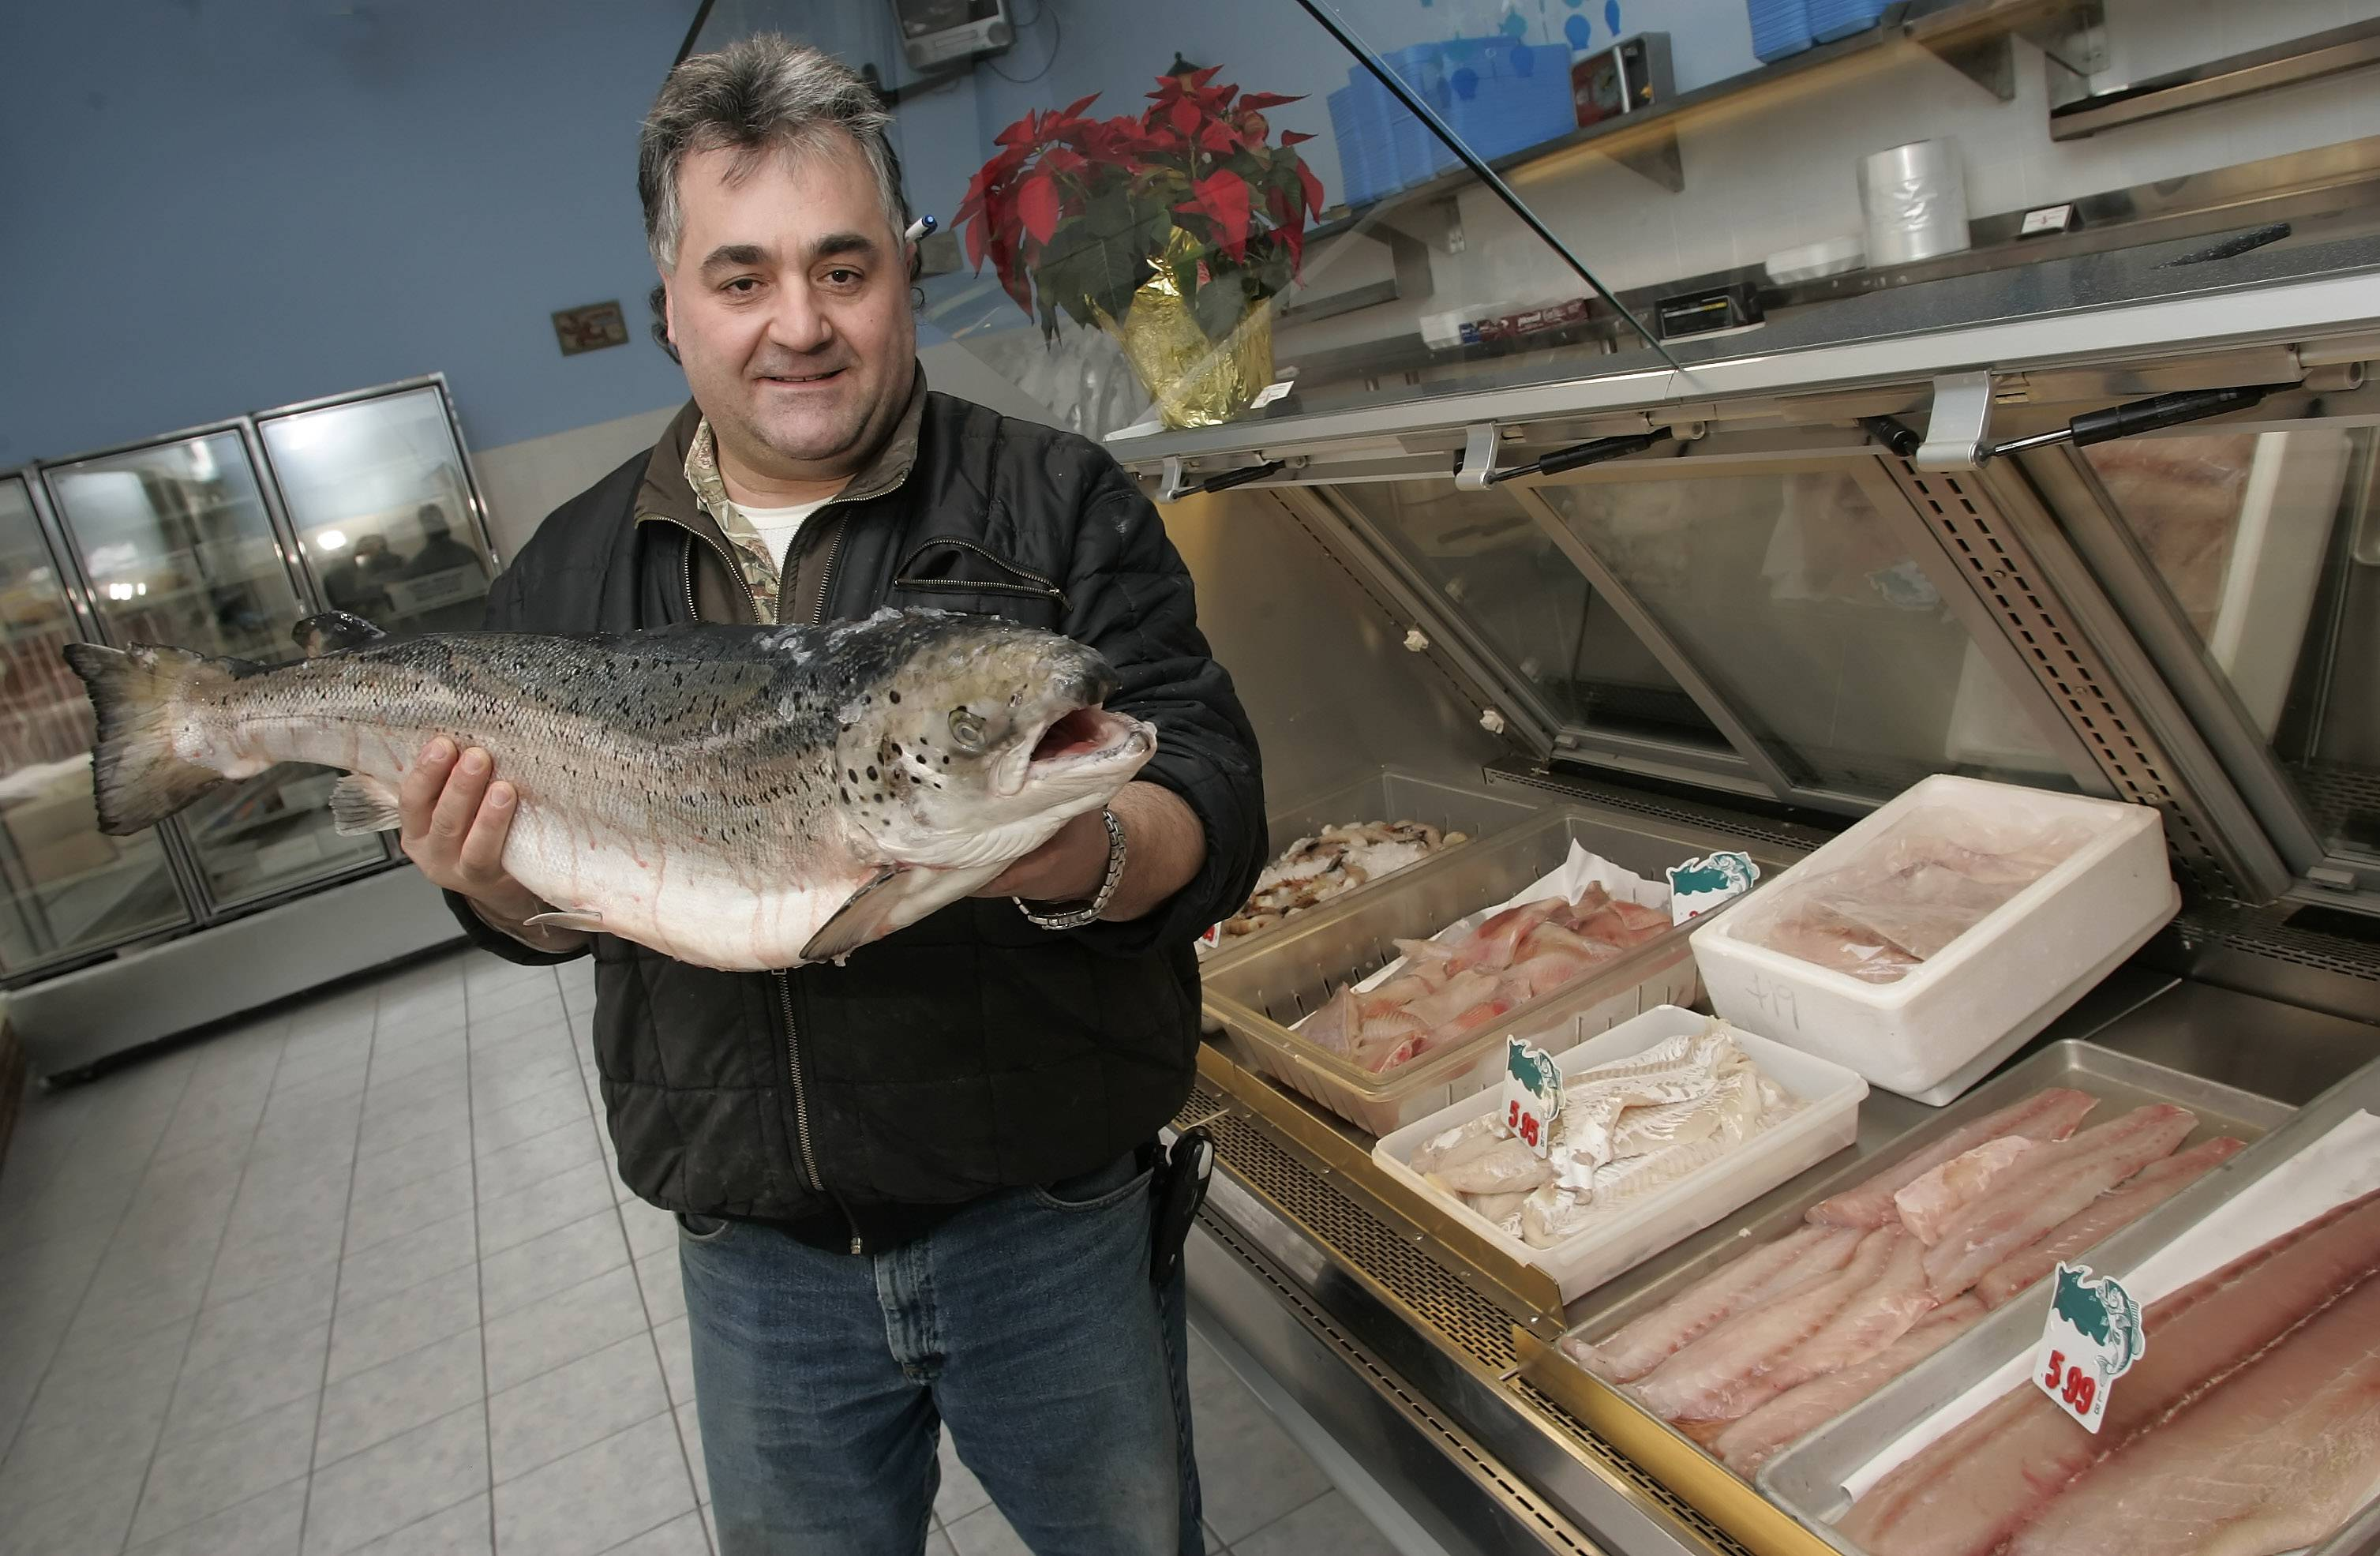 Louis Psihogios, owner of Boston Fish Market in Des Plaines, plans to open a new restaurant in Wheeling.